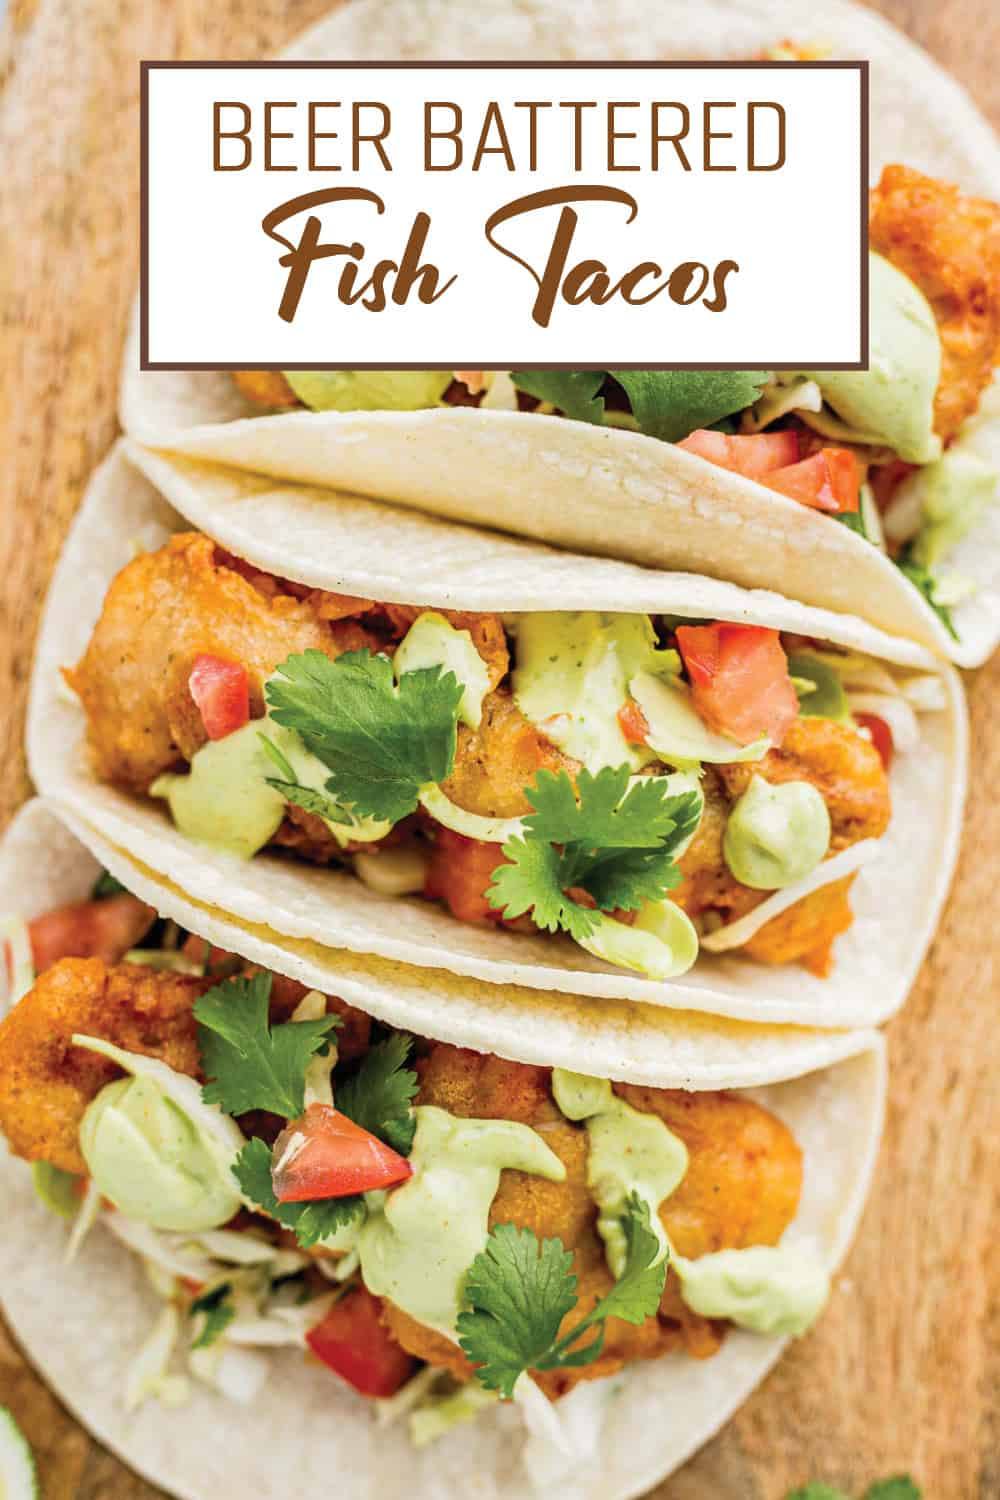 Beer Battered Fish Tacos (Authentic Baja-Style)